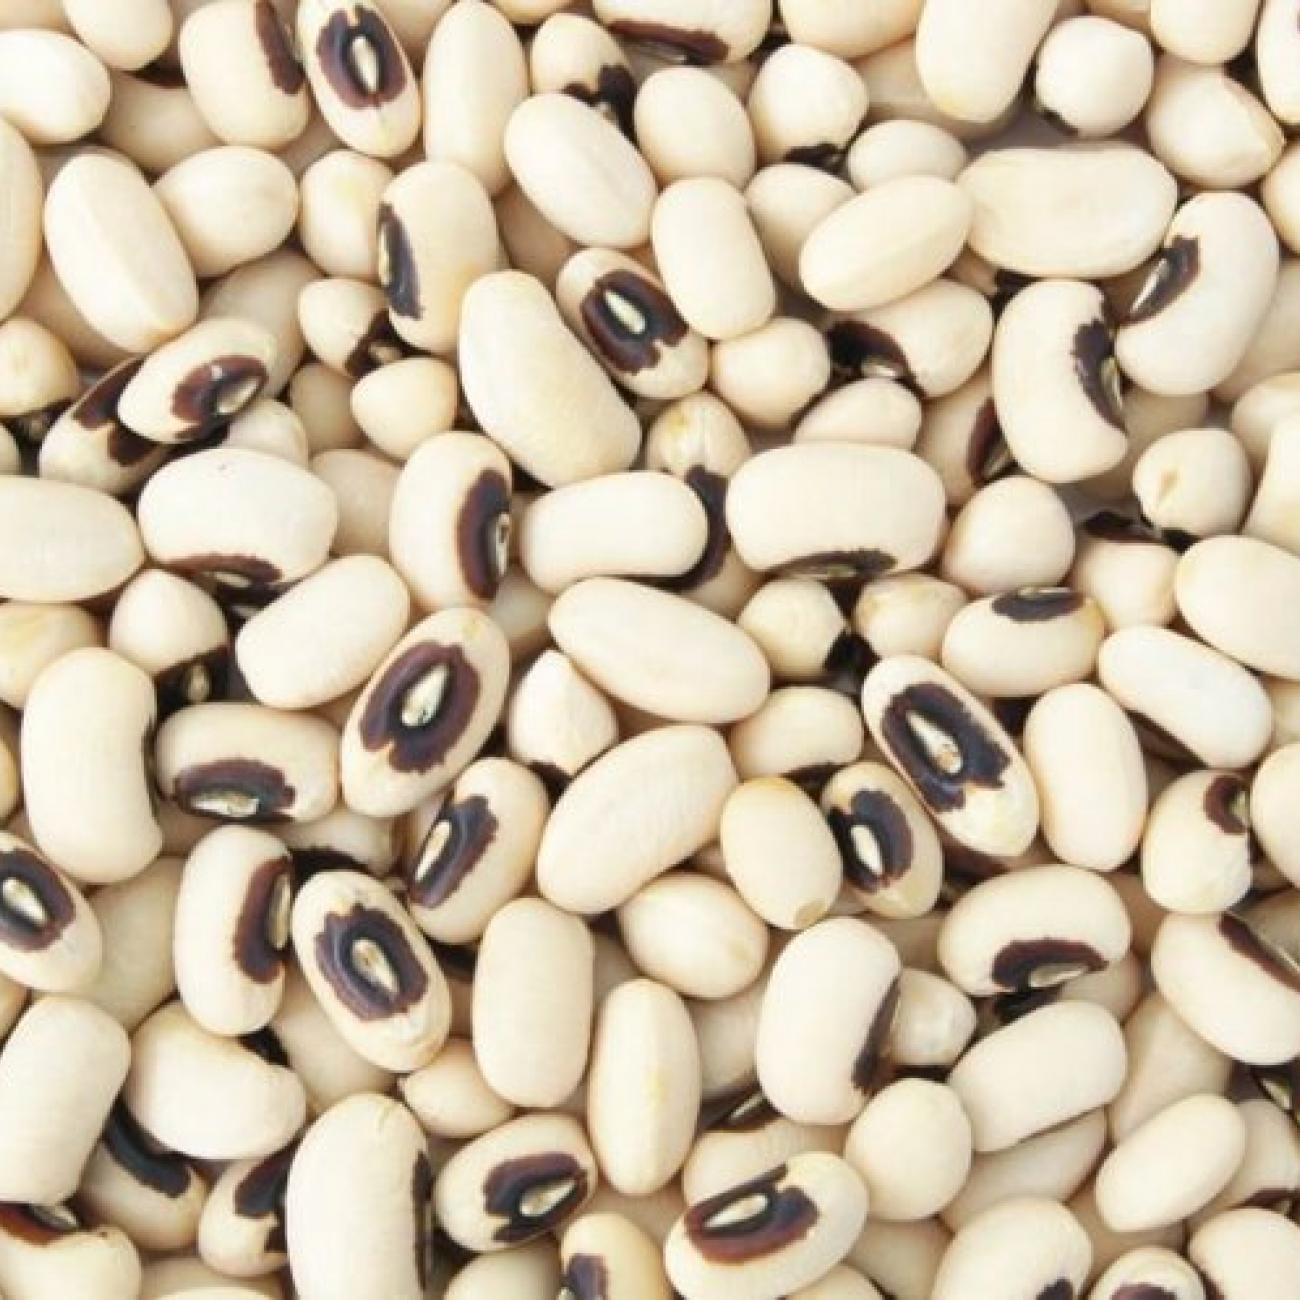 Black Eyed Pea